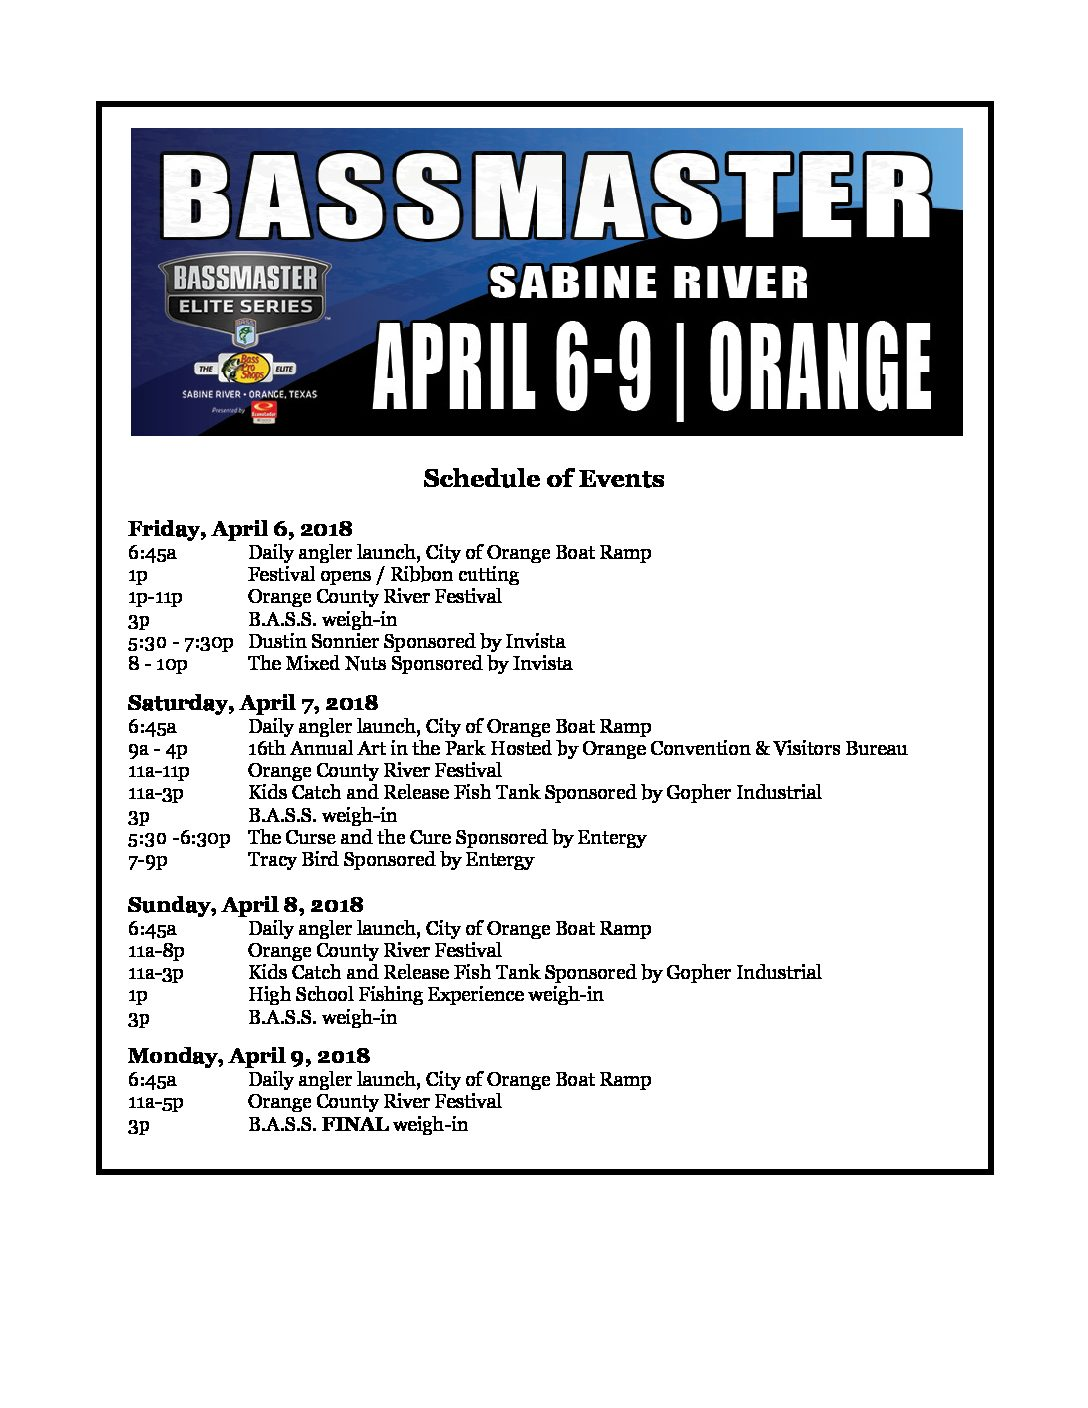 Bassmaster Elite & Orange County River Festival Schedule of Events